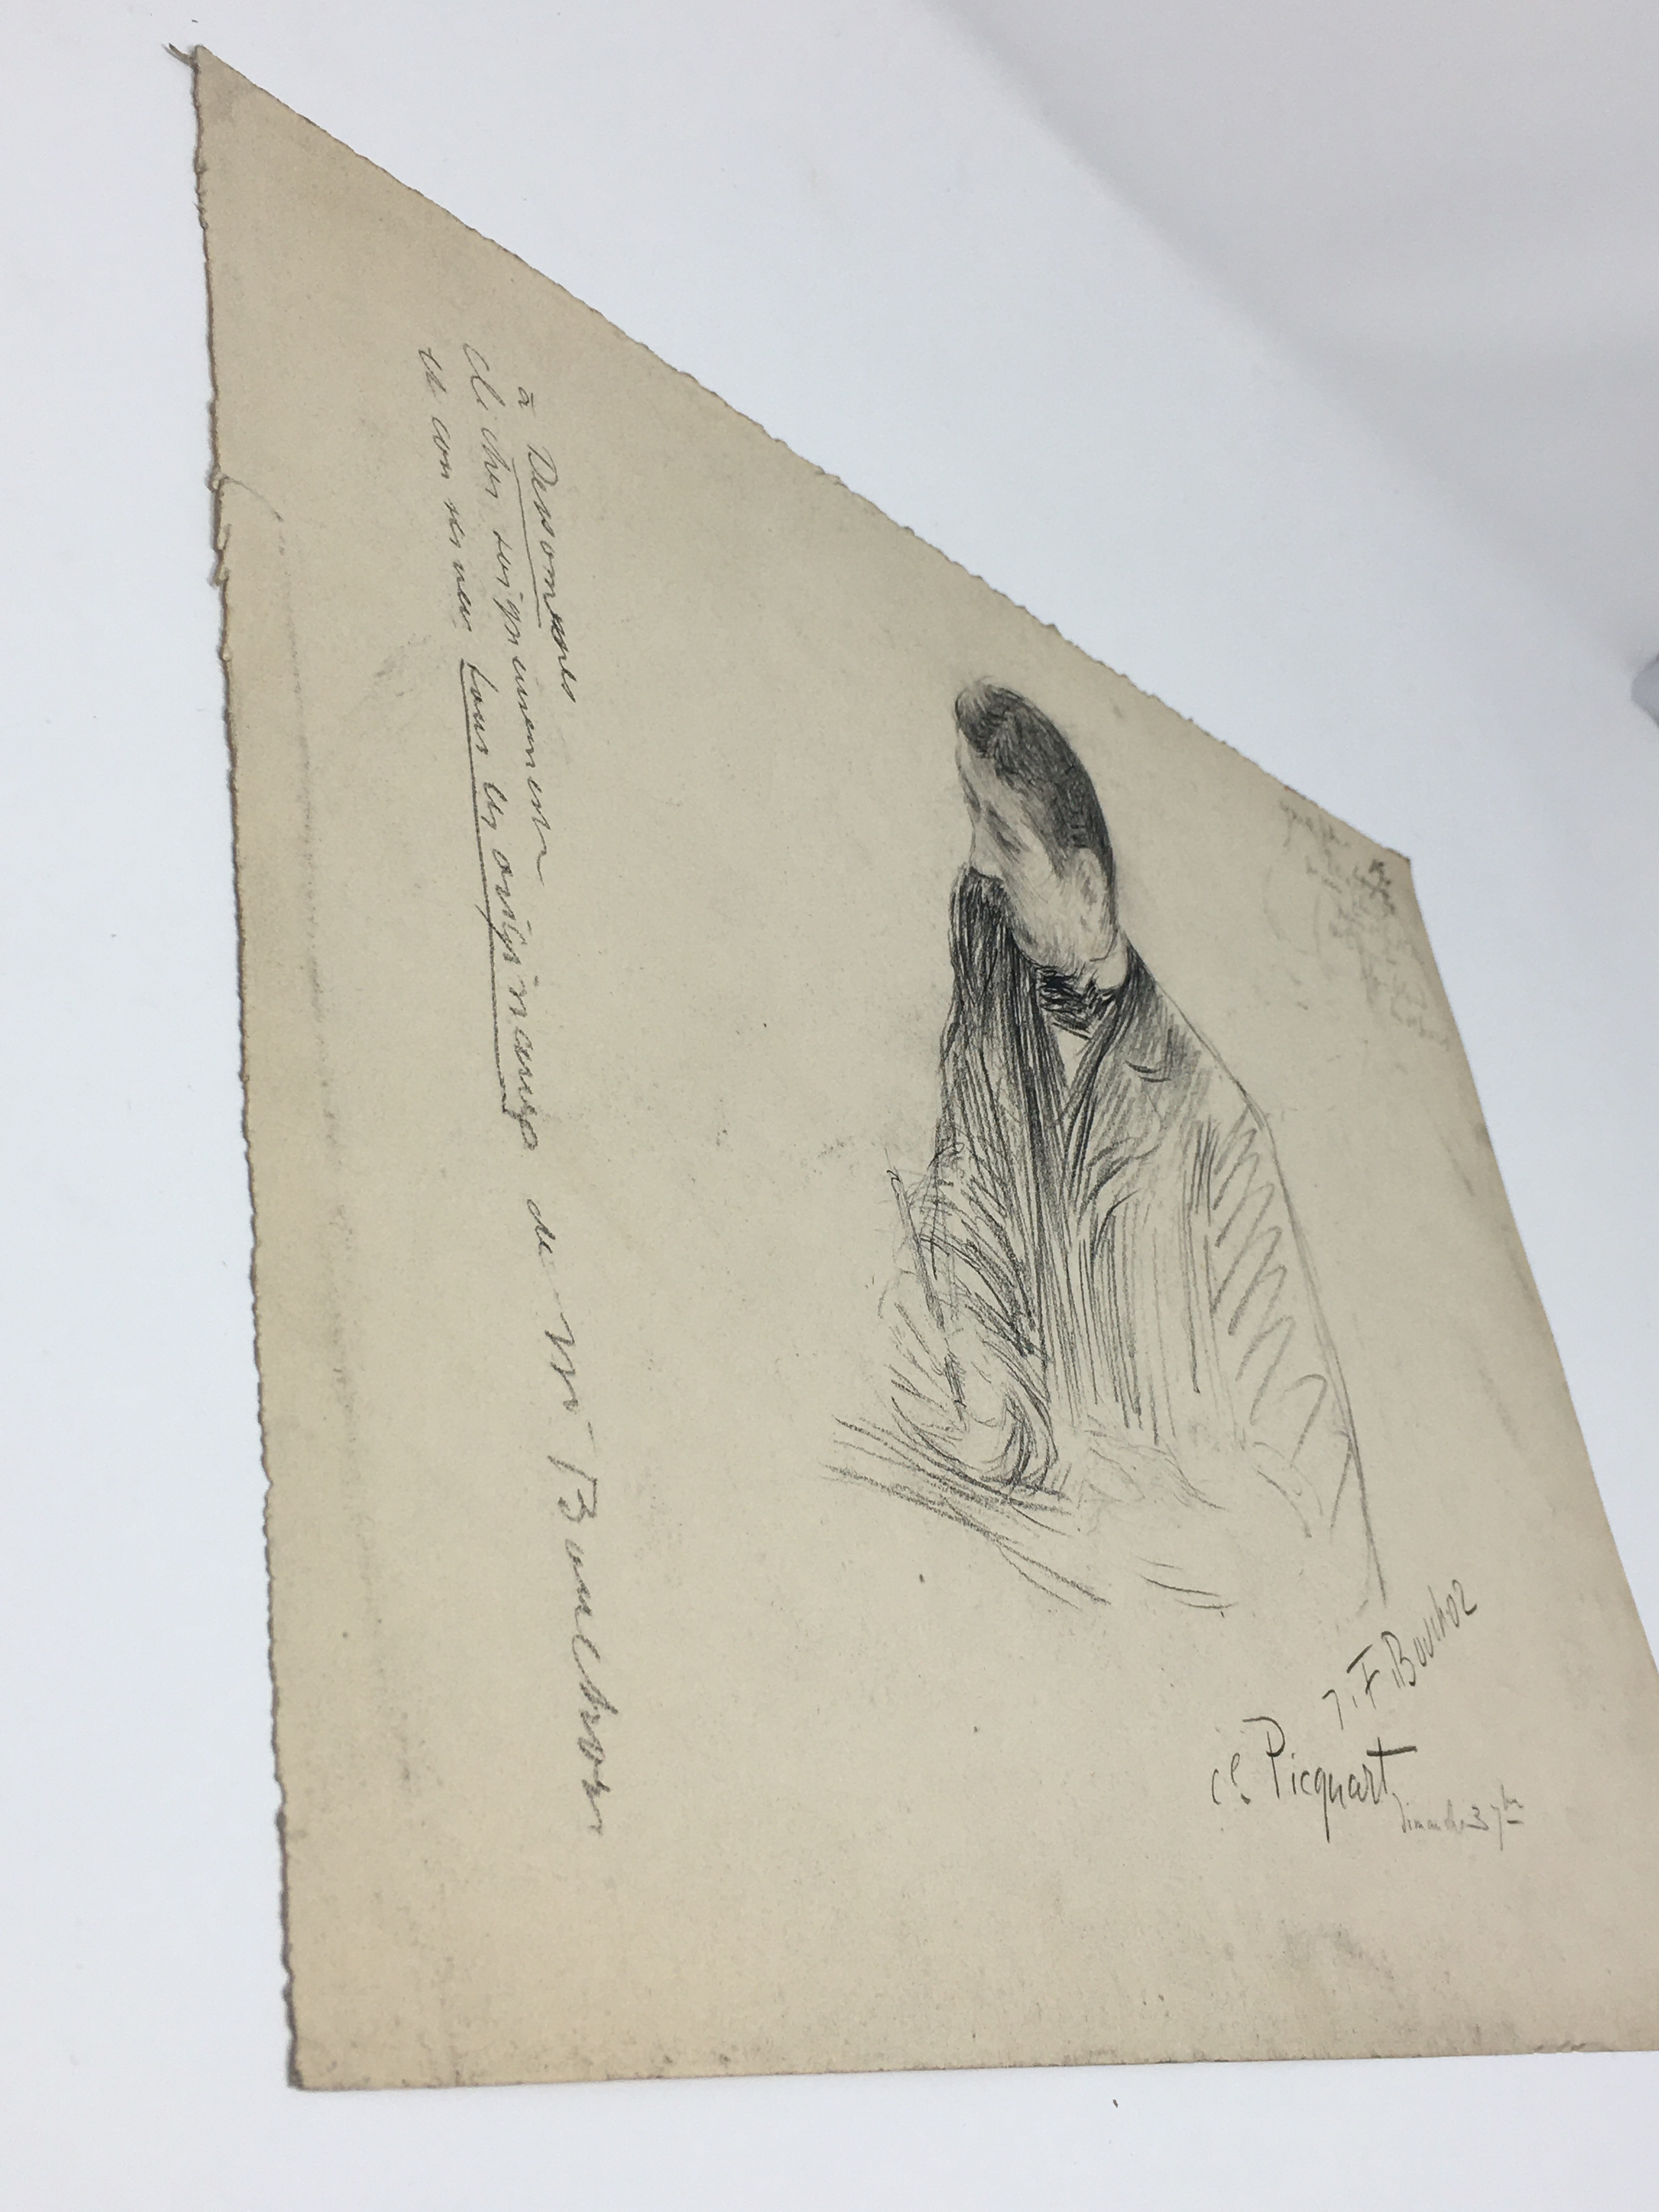 J'Accuse Newspaper, Emile Zola Quote, Signed Dreyfus Portrait, Rare Trial Drawings & Schwartzkoppen - Image 41 of 74